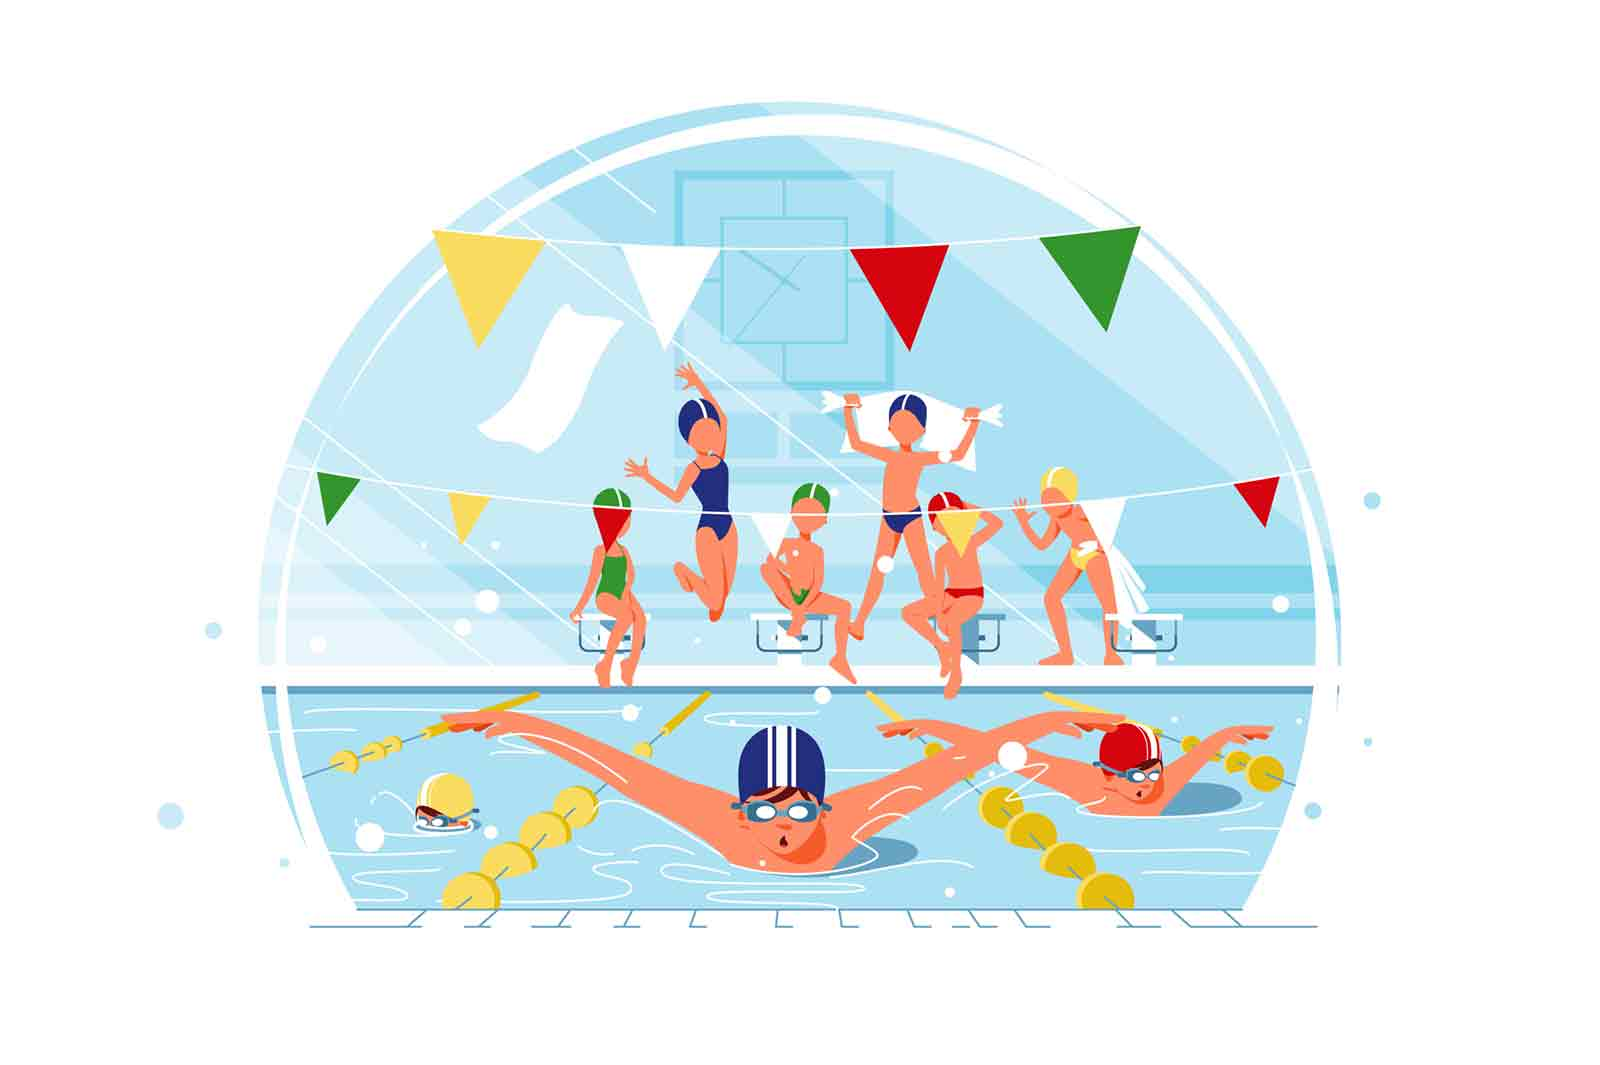 Kids swimming competition on happy kids background vector illustration.